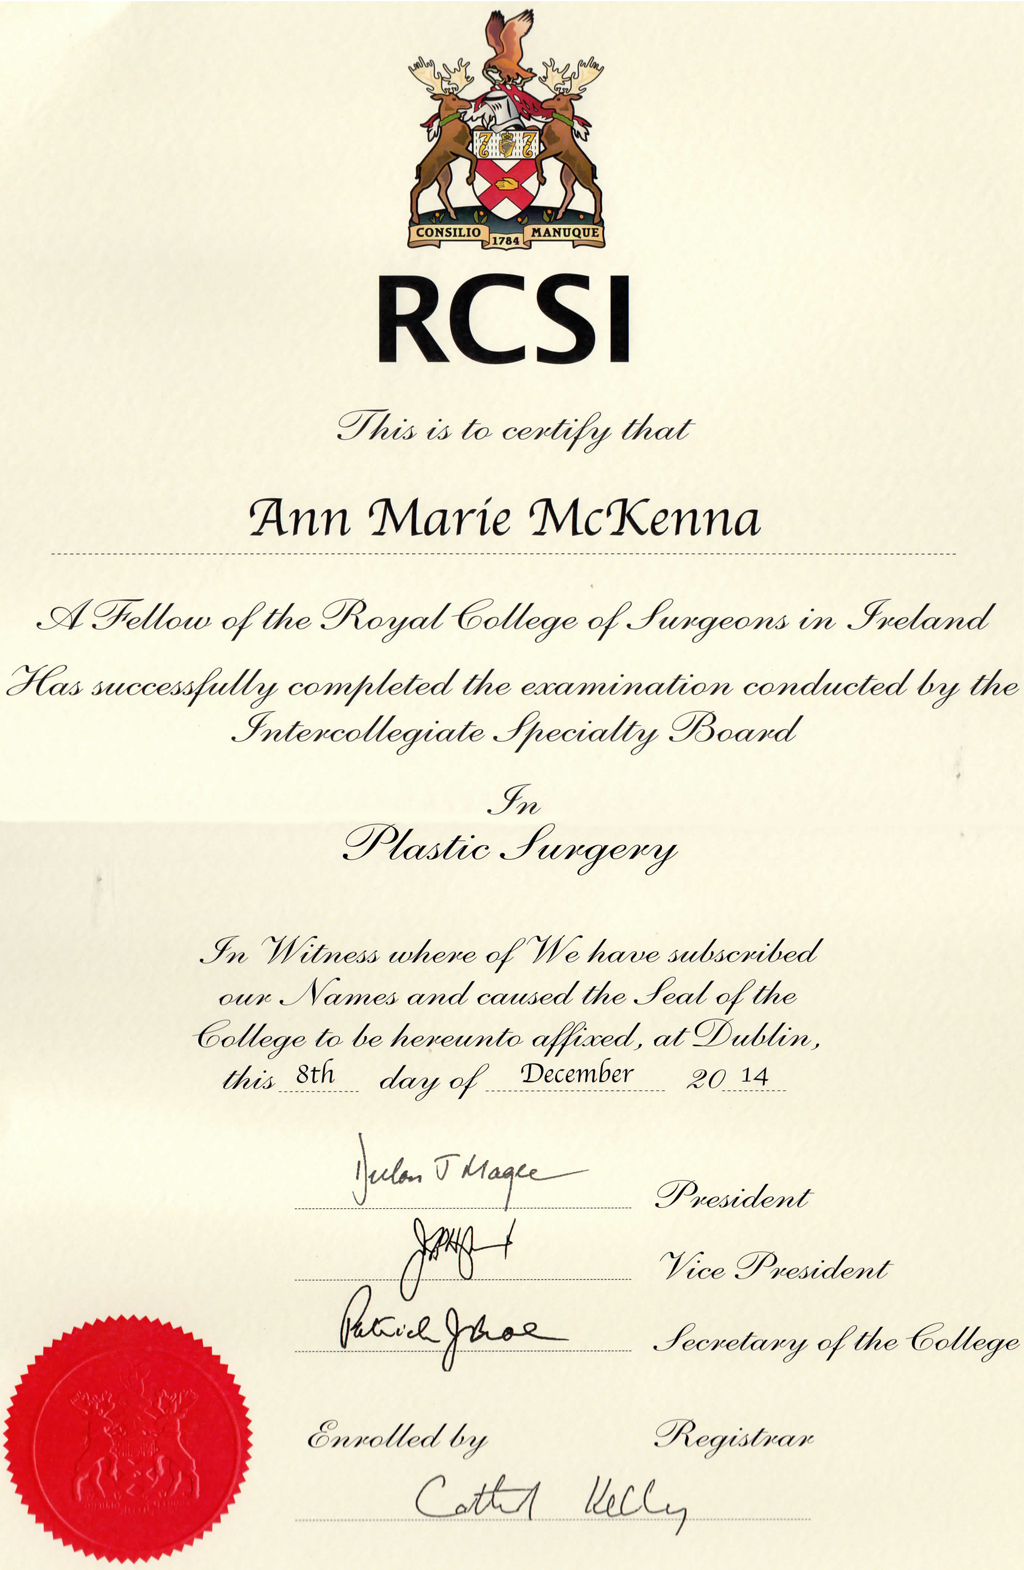 Fellowship of the Royal College of Surgeons Ireland Award